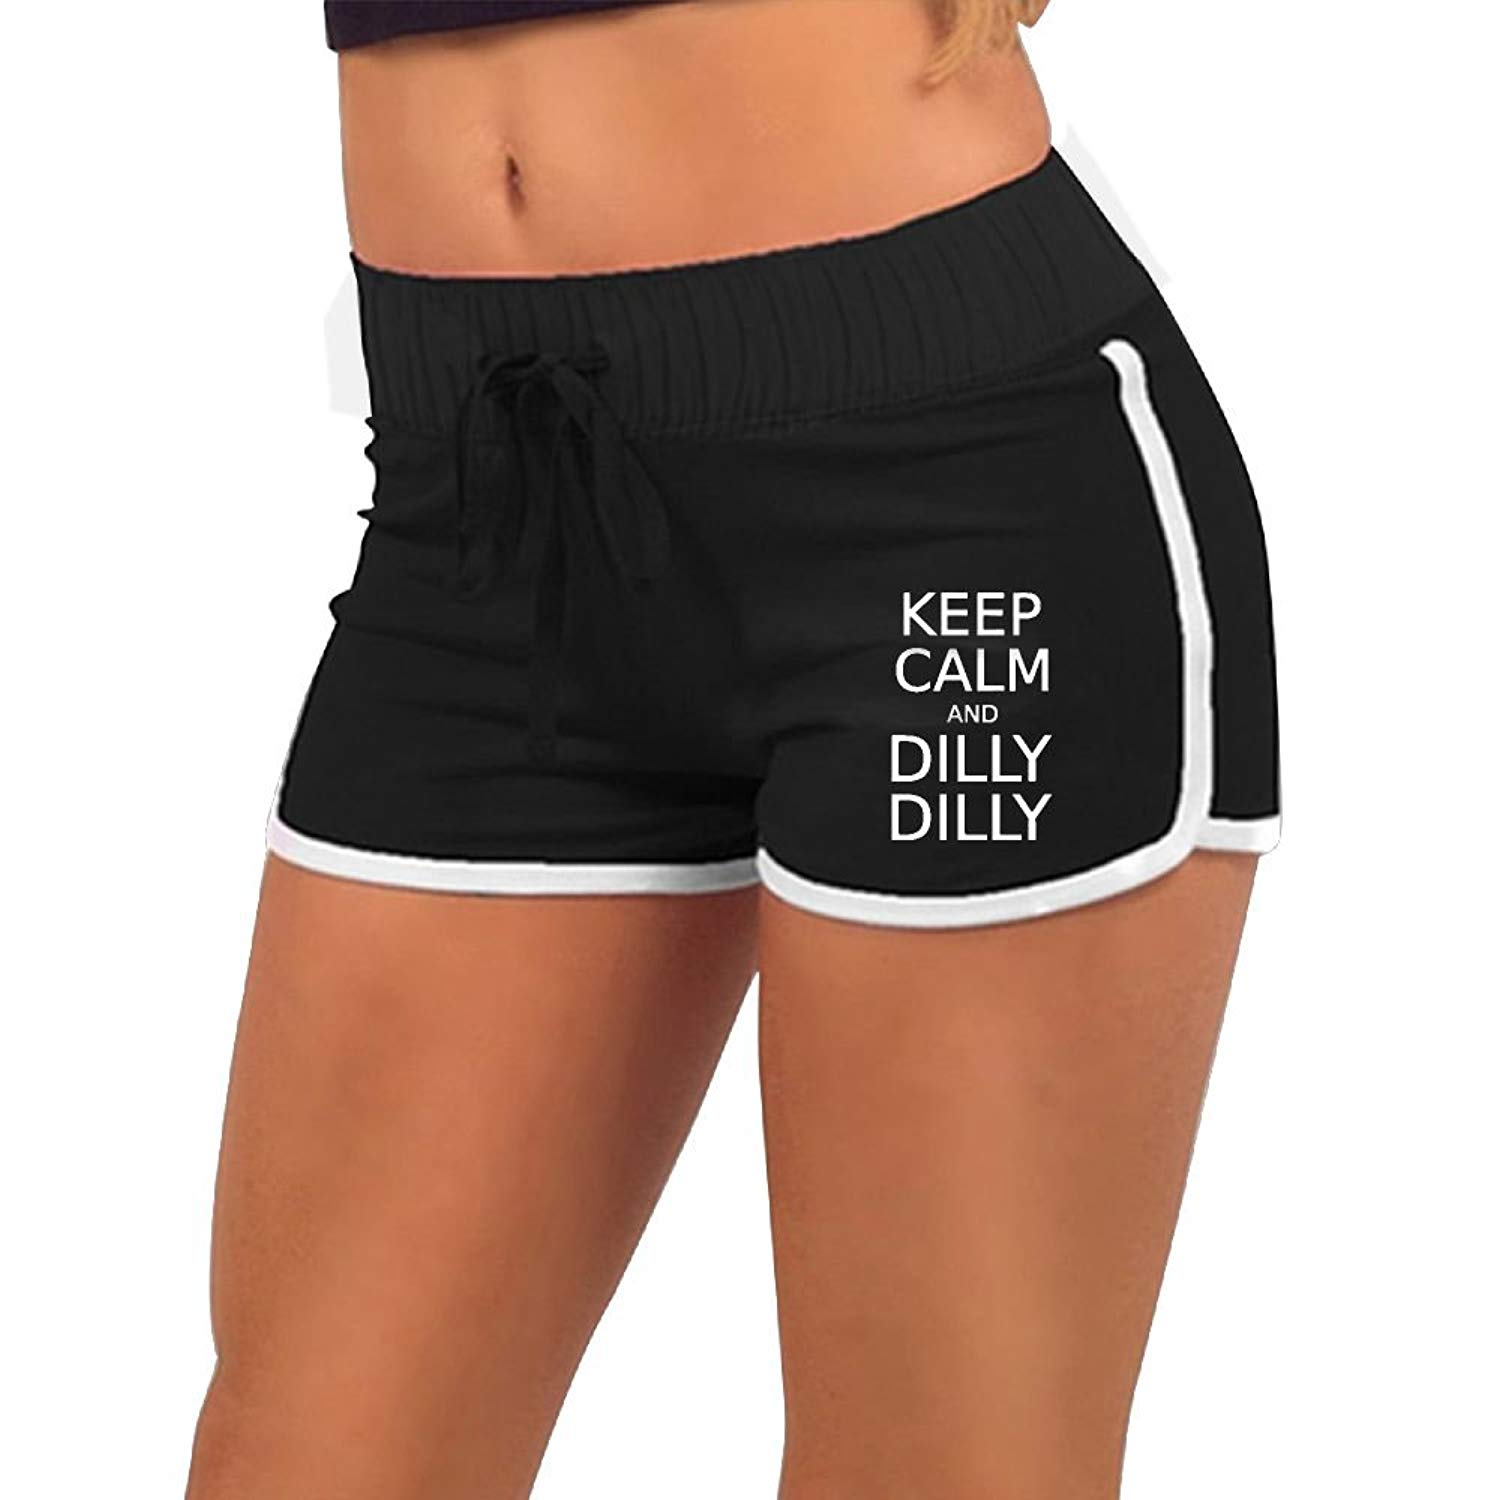 Womens Sexy Hot Pants Keep Calm and Dilly Dilly Torso Silhouette Dance Yoga Festivals Shorts